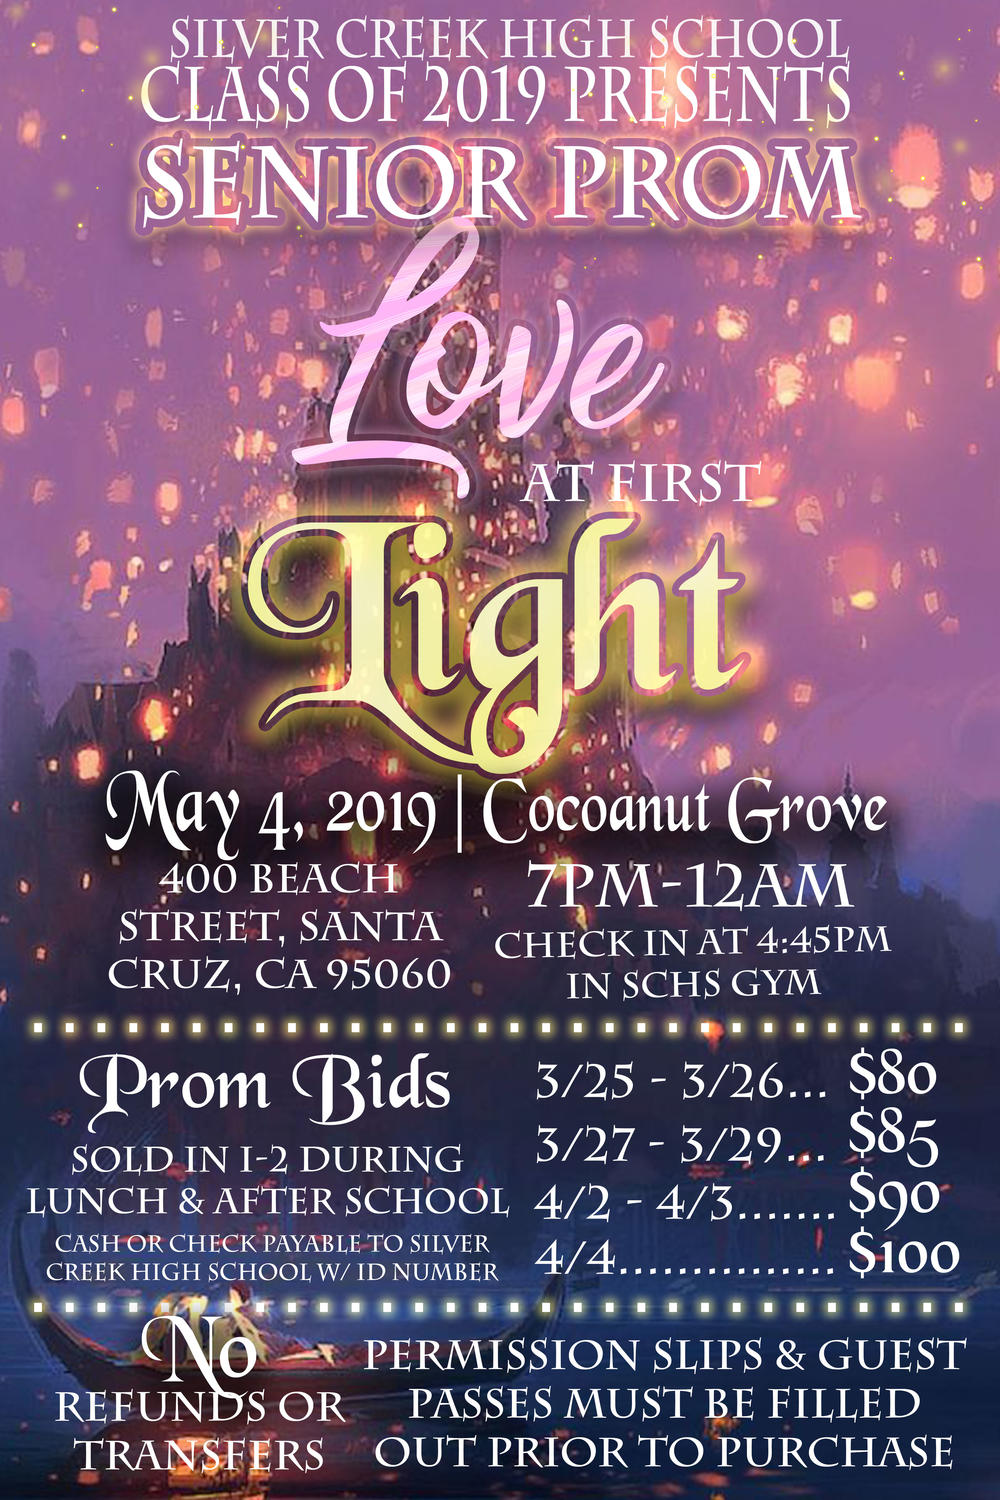 Information about SCHS s 2019 Senior Prom